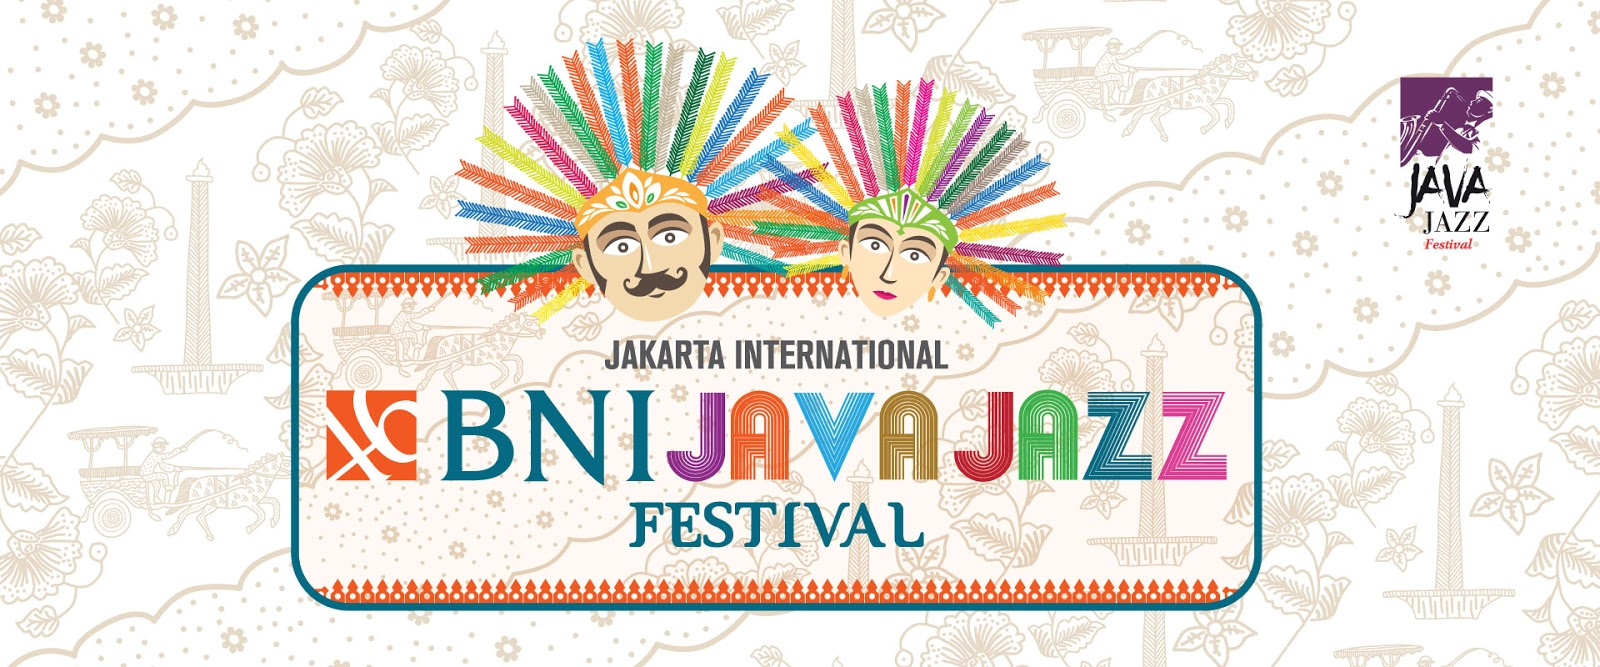 Mengorganisir Adalah Itbbs In The Bedroom Before Sleep Press Release Bni Java Jazz